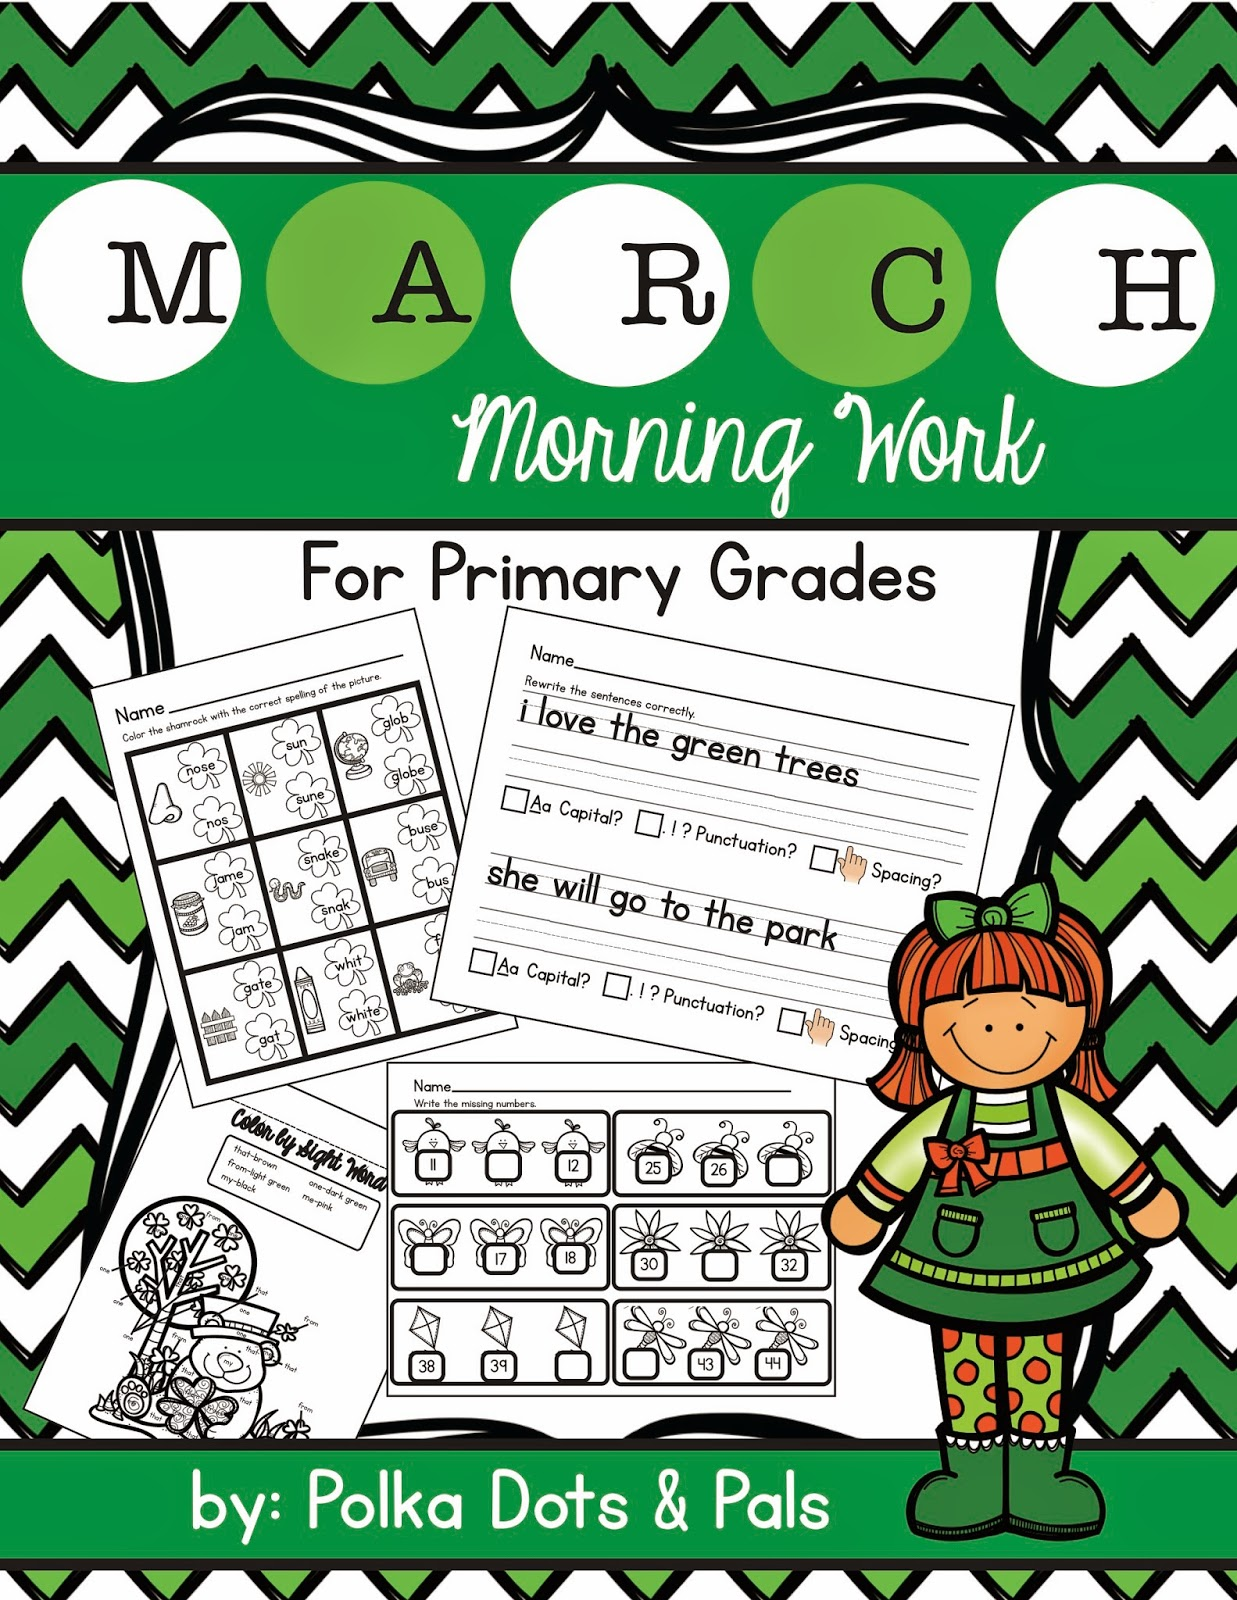 https://www.teacherspayteachers.com/Product/March-Morning-Work-for-Primary-Grades-1717125